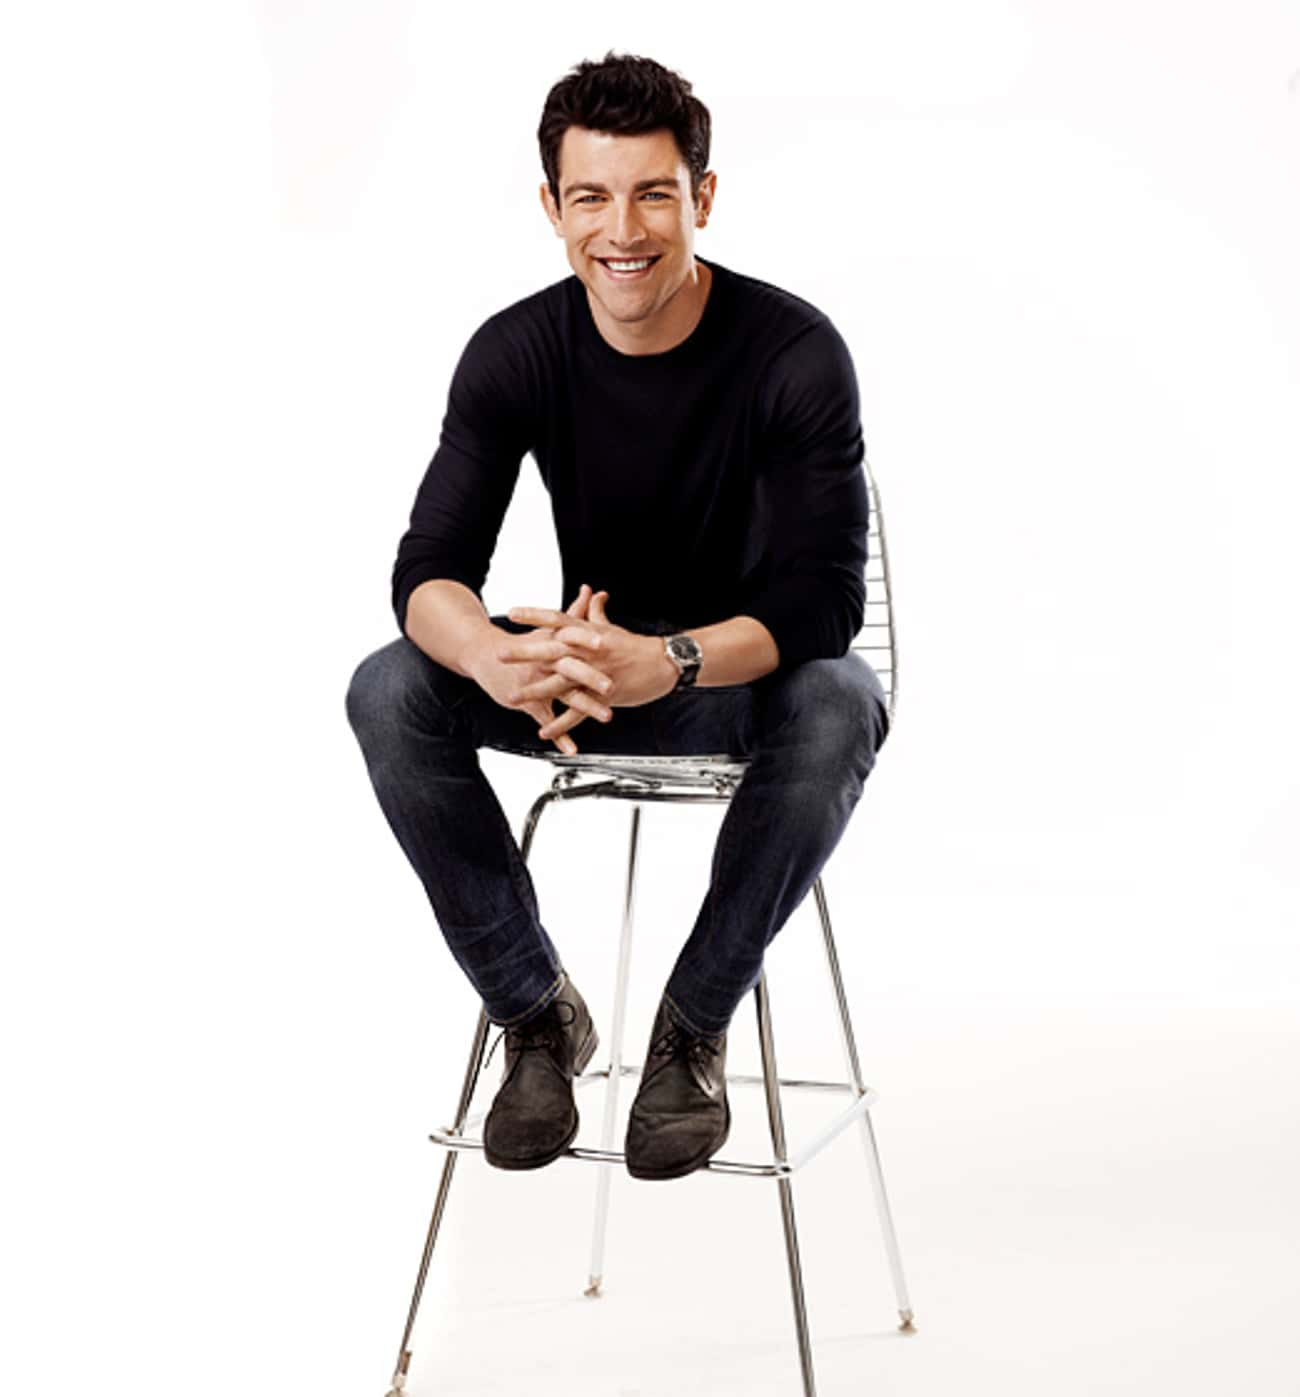 Max Greenfield in Black Long S is listed (or ranked) 2 on the list Hot Max Greenfield Photos